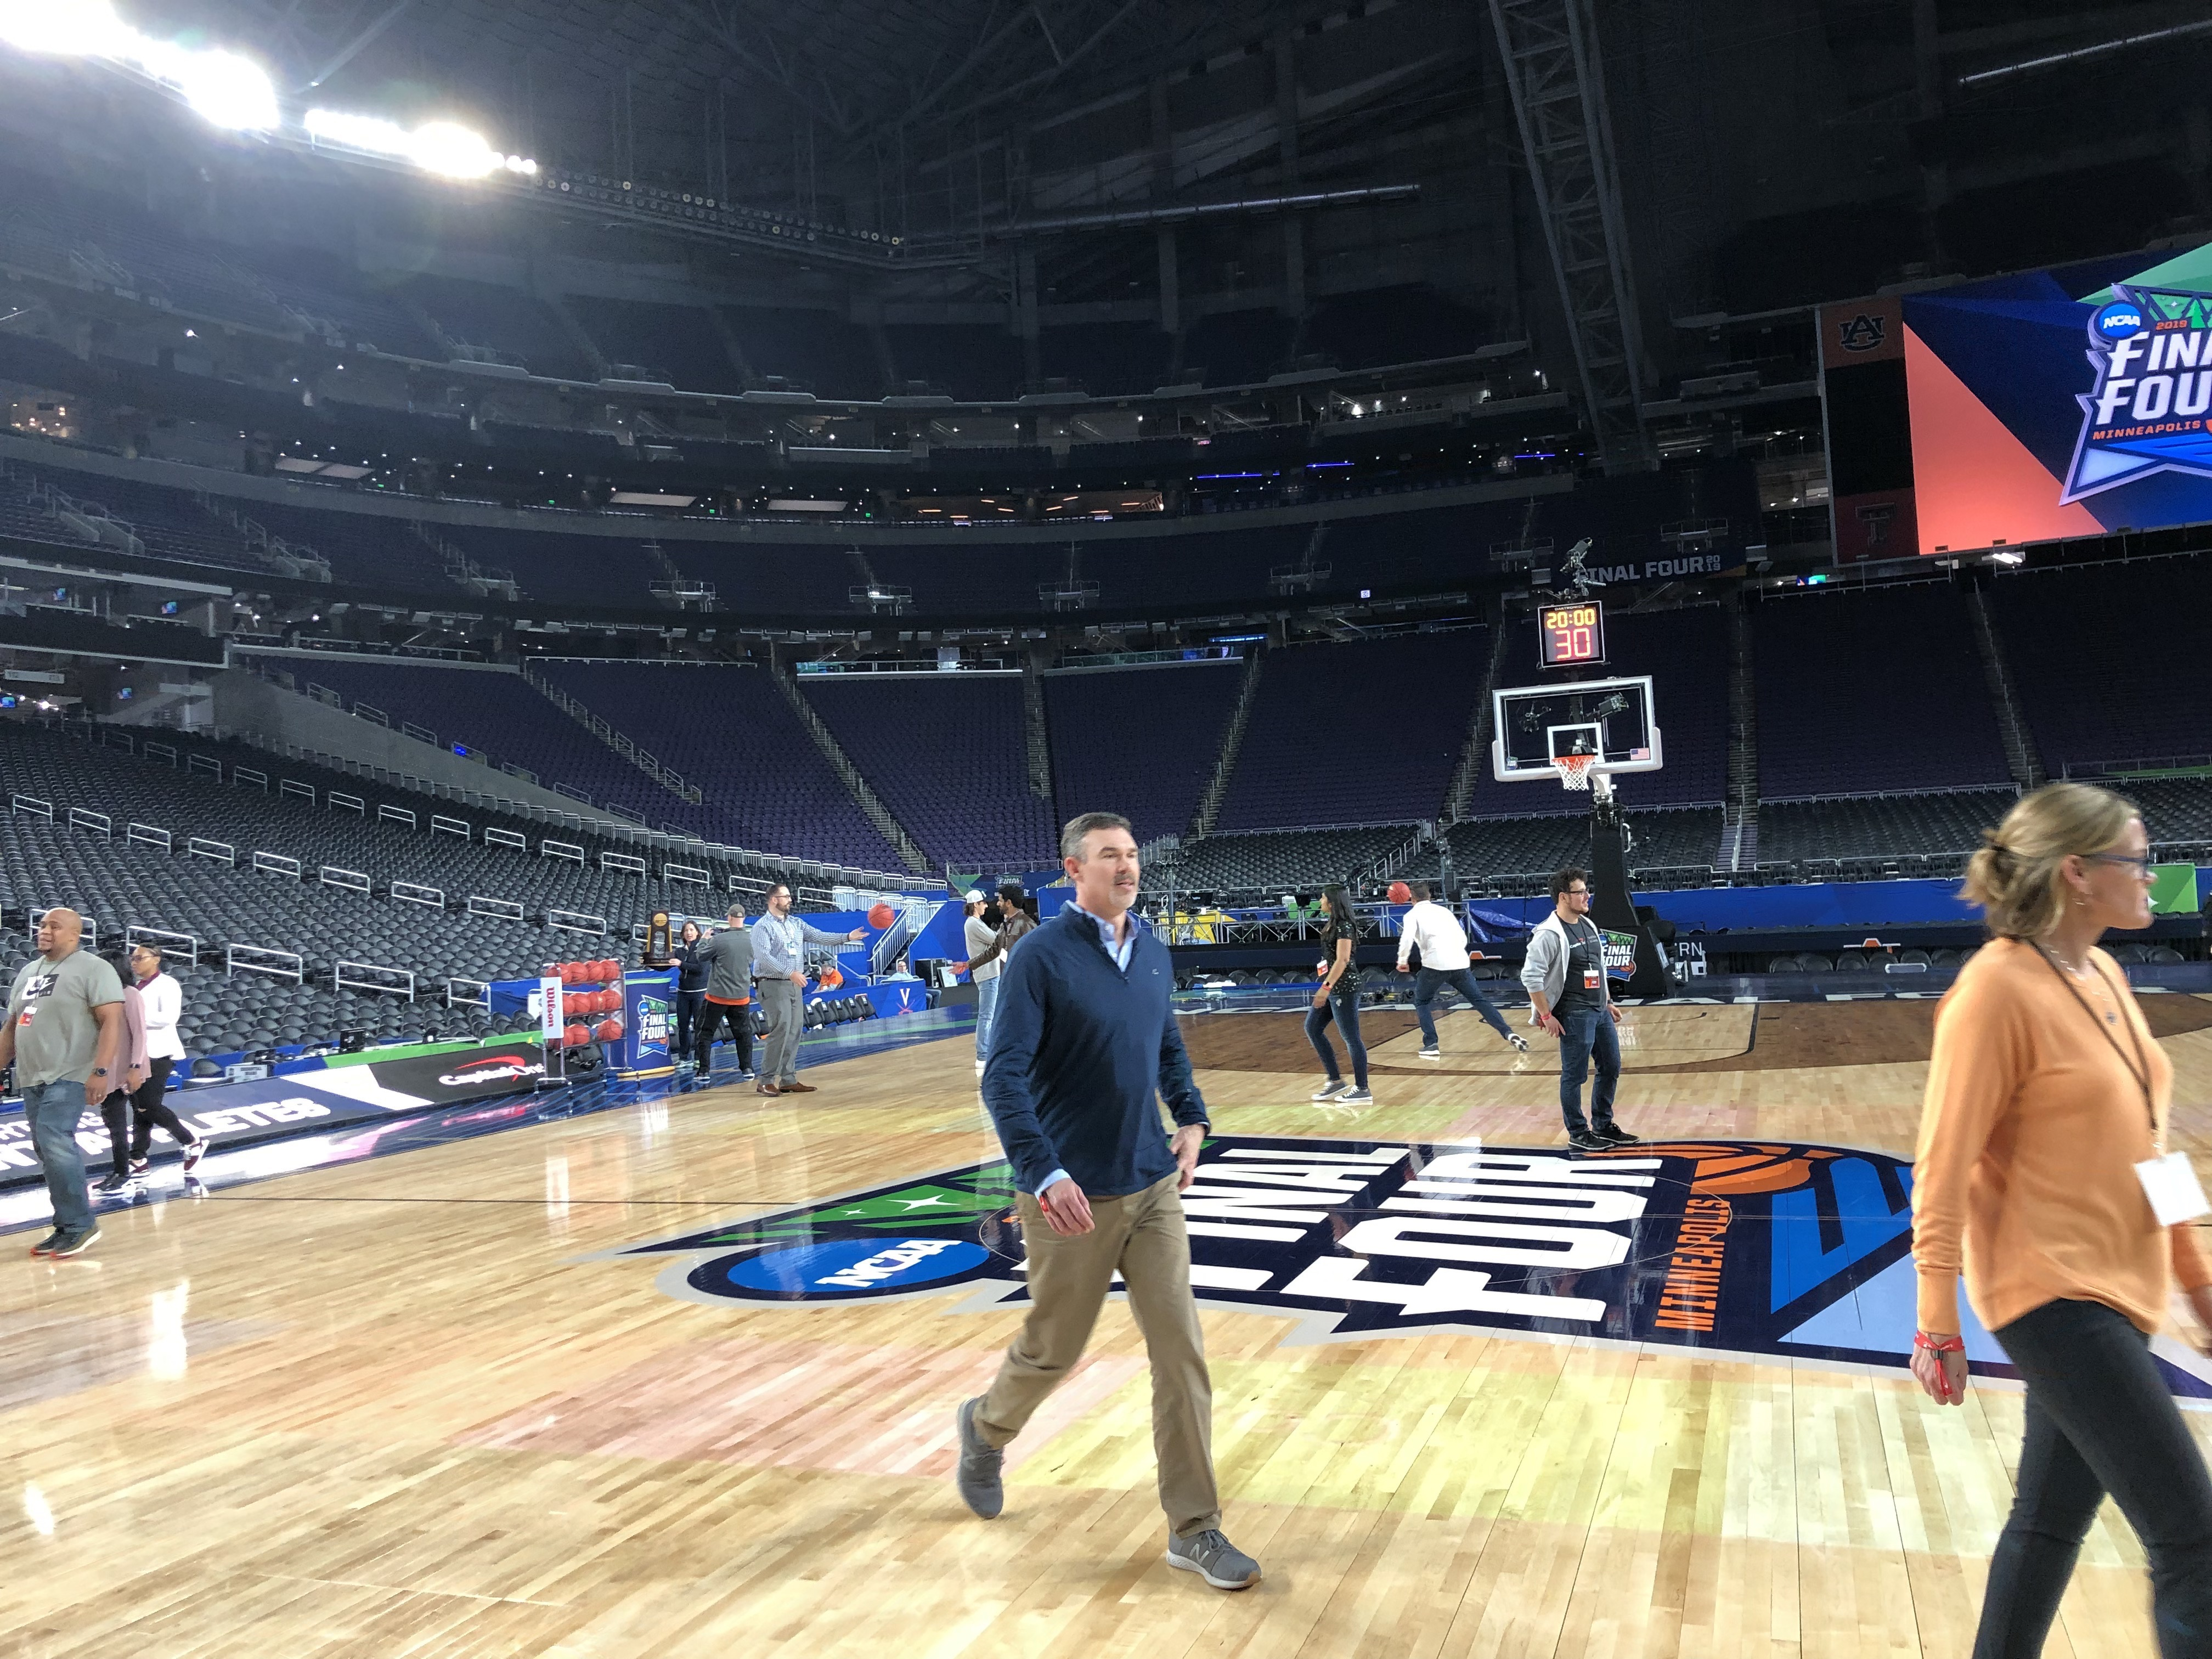 Peple on the basketball court the night before the Final Four games. Empty stadium otherwise.